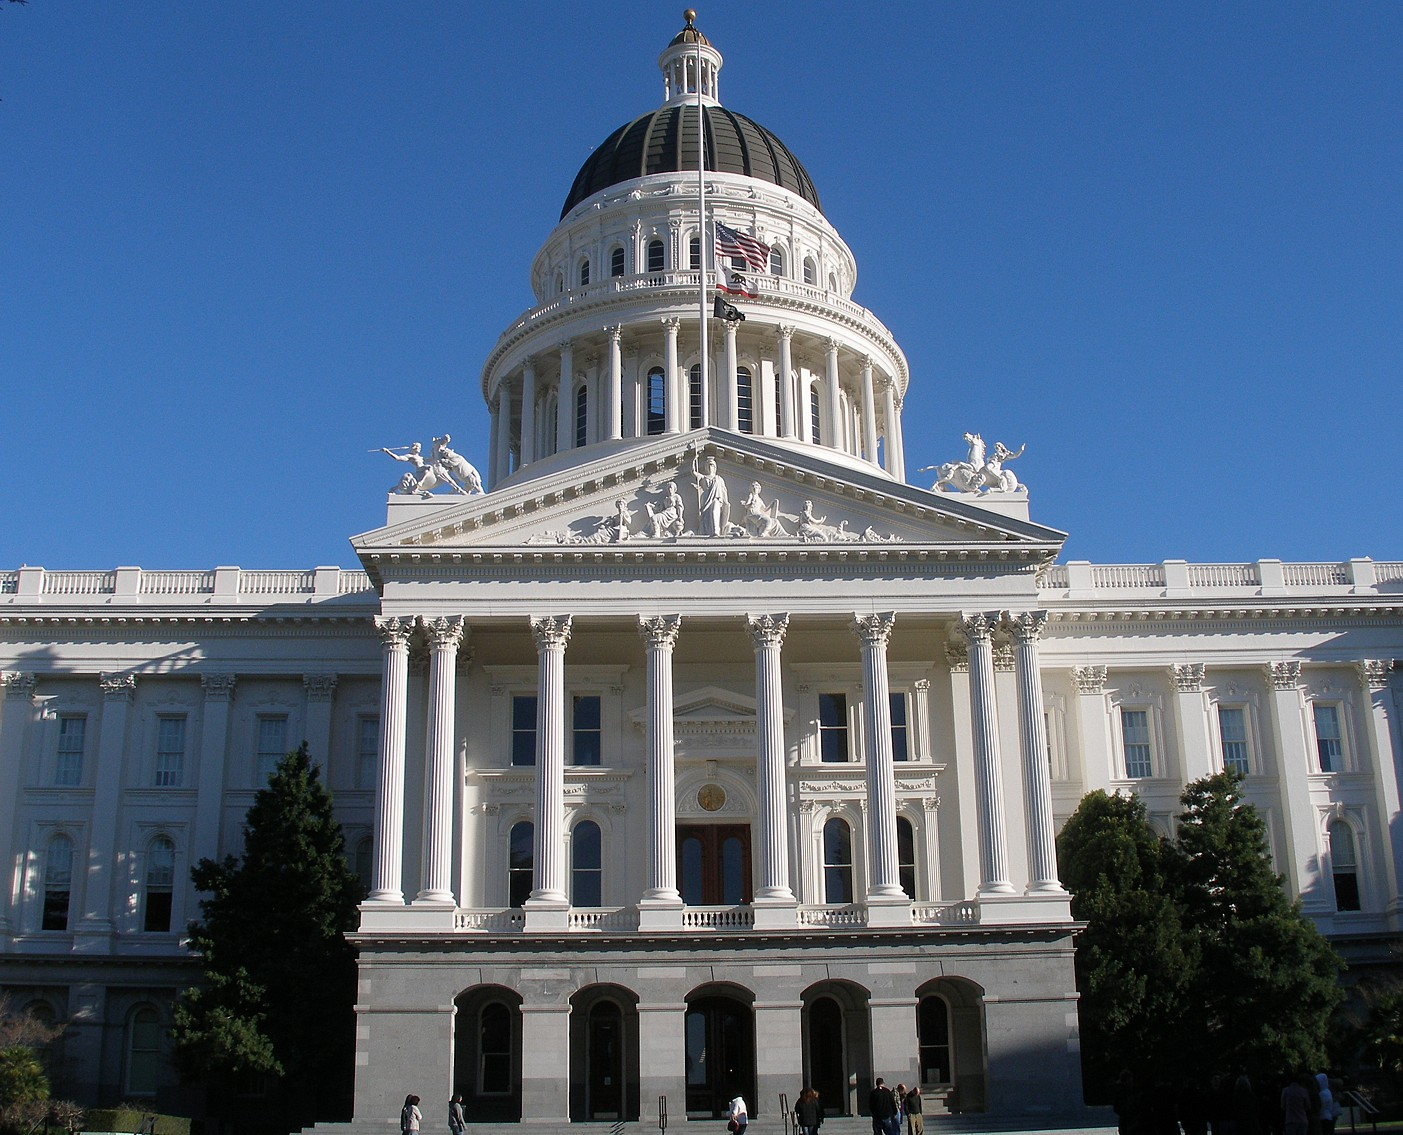 California State Legislators for Tri-Counties Area